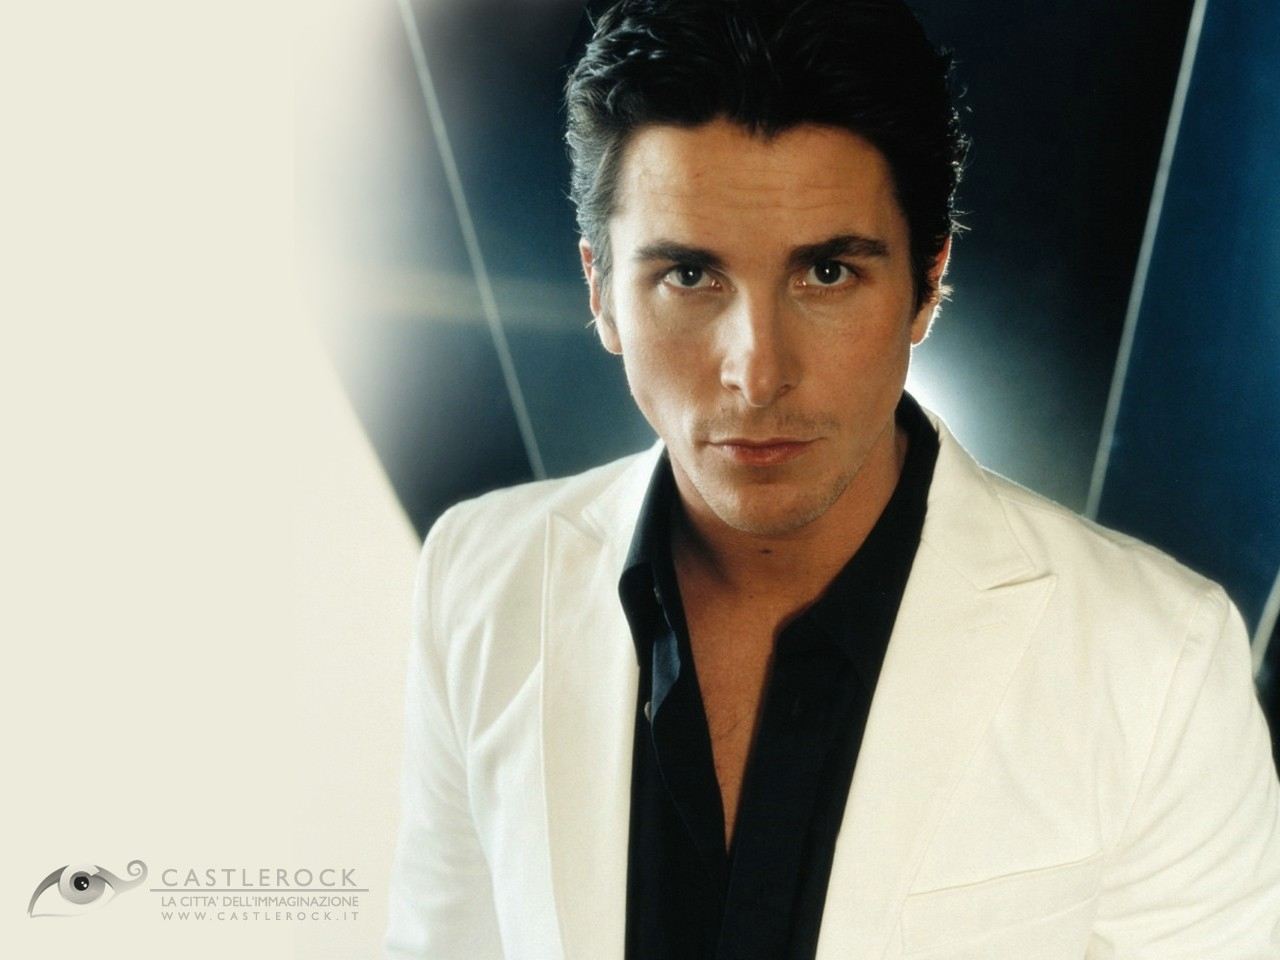 Wallpaper di Christian Bale